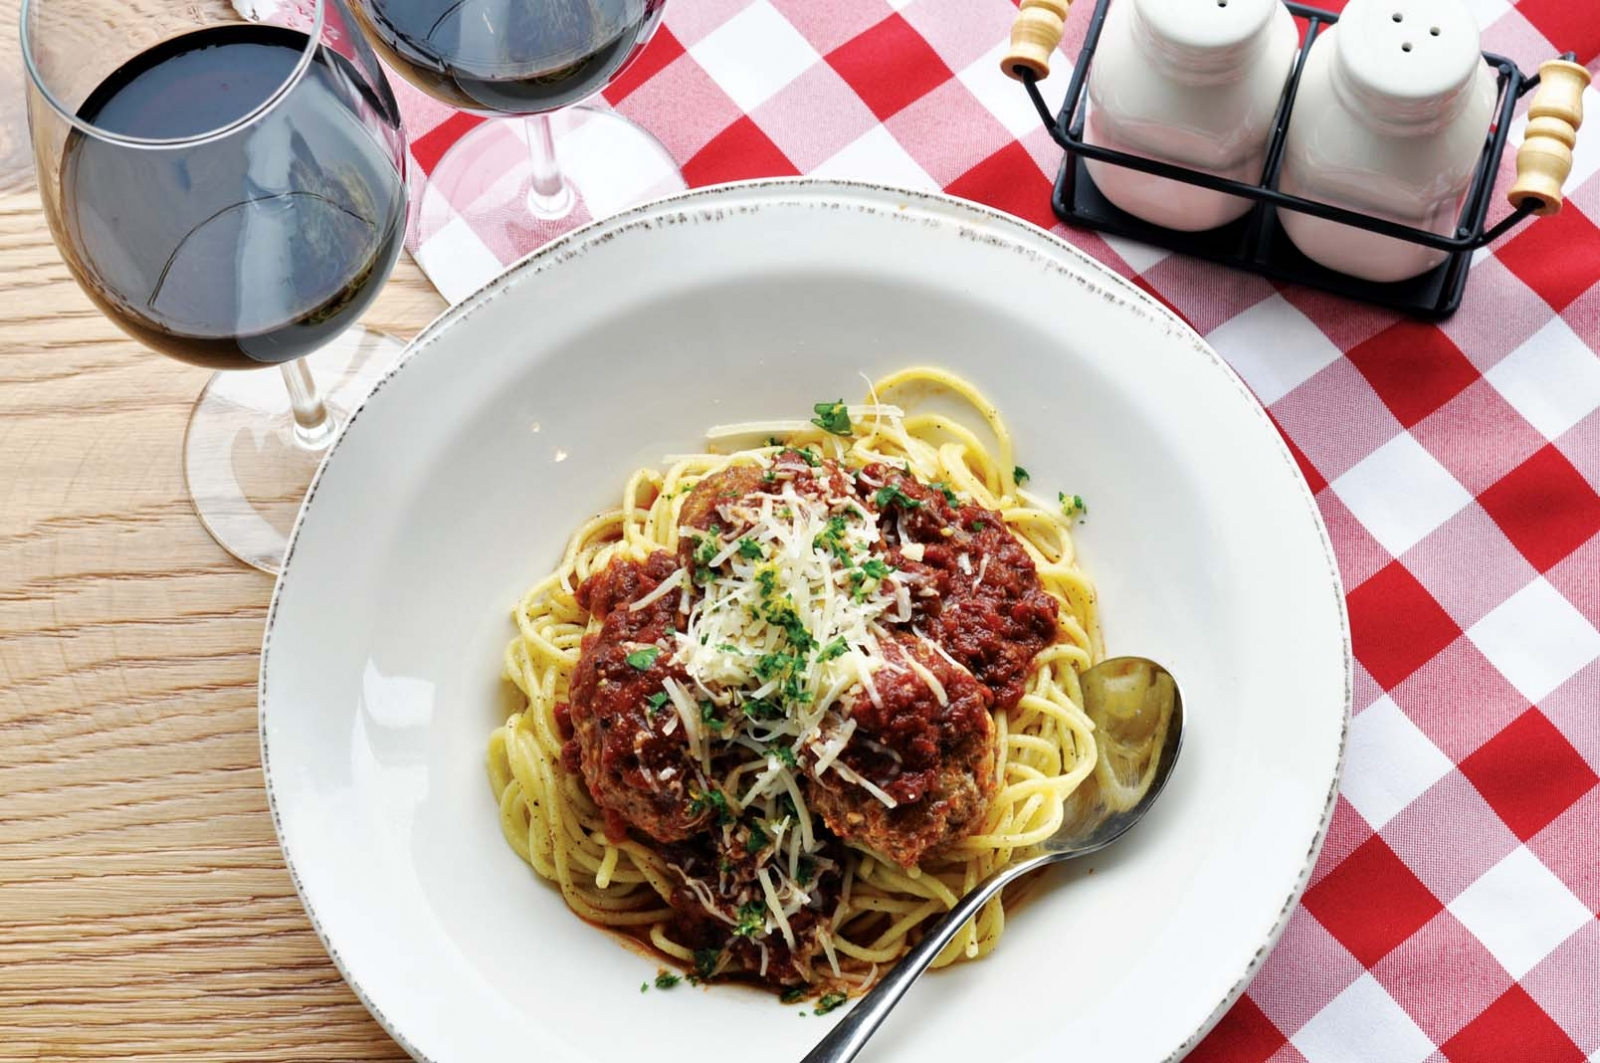 A plate of spaghetti and meatballs from Red Sauce Rebellion.